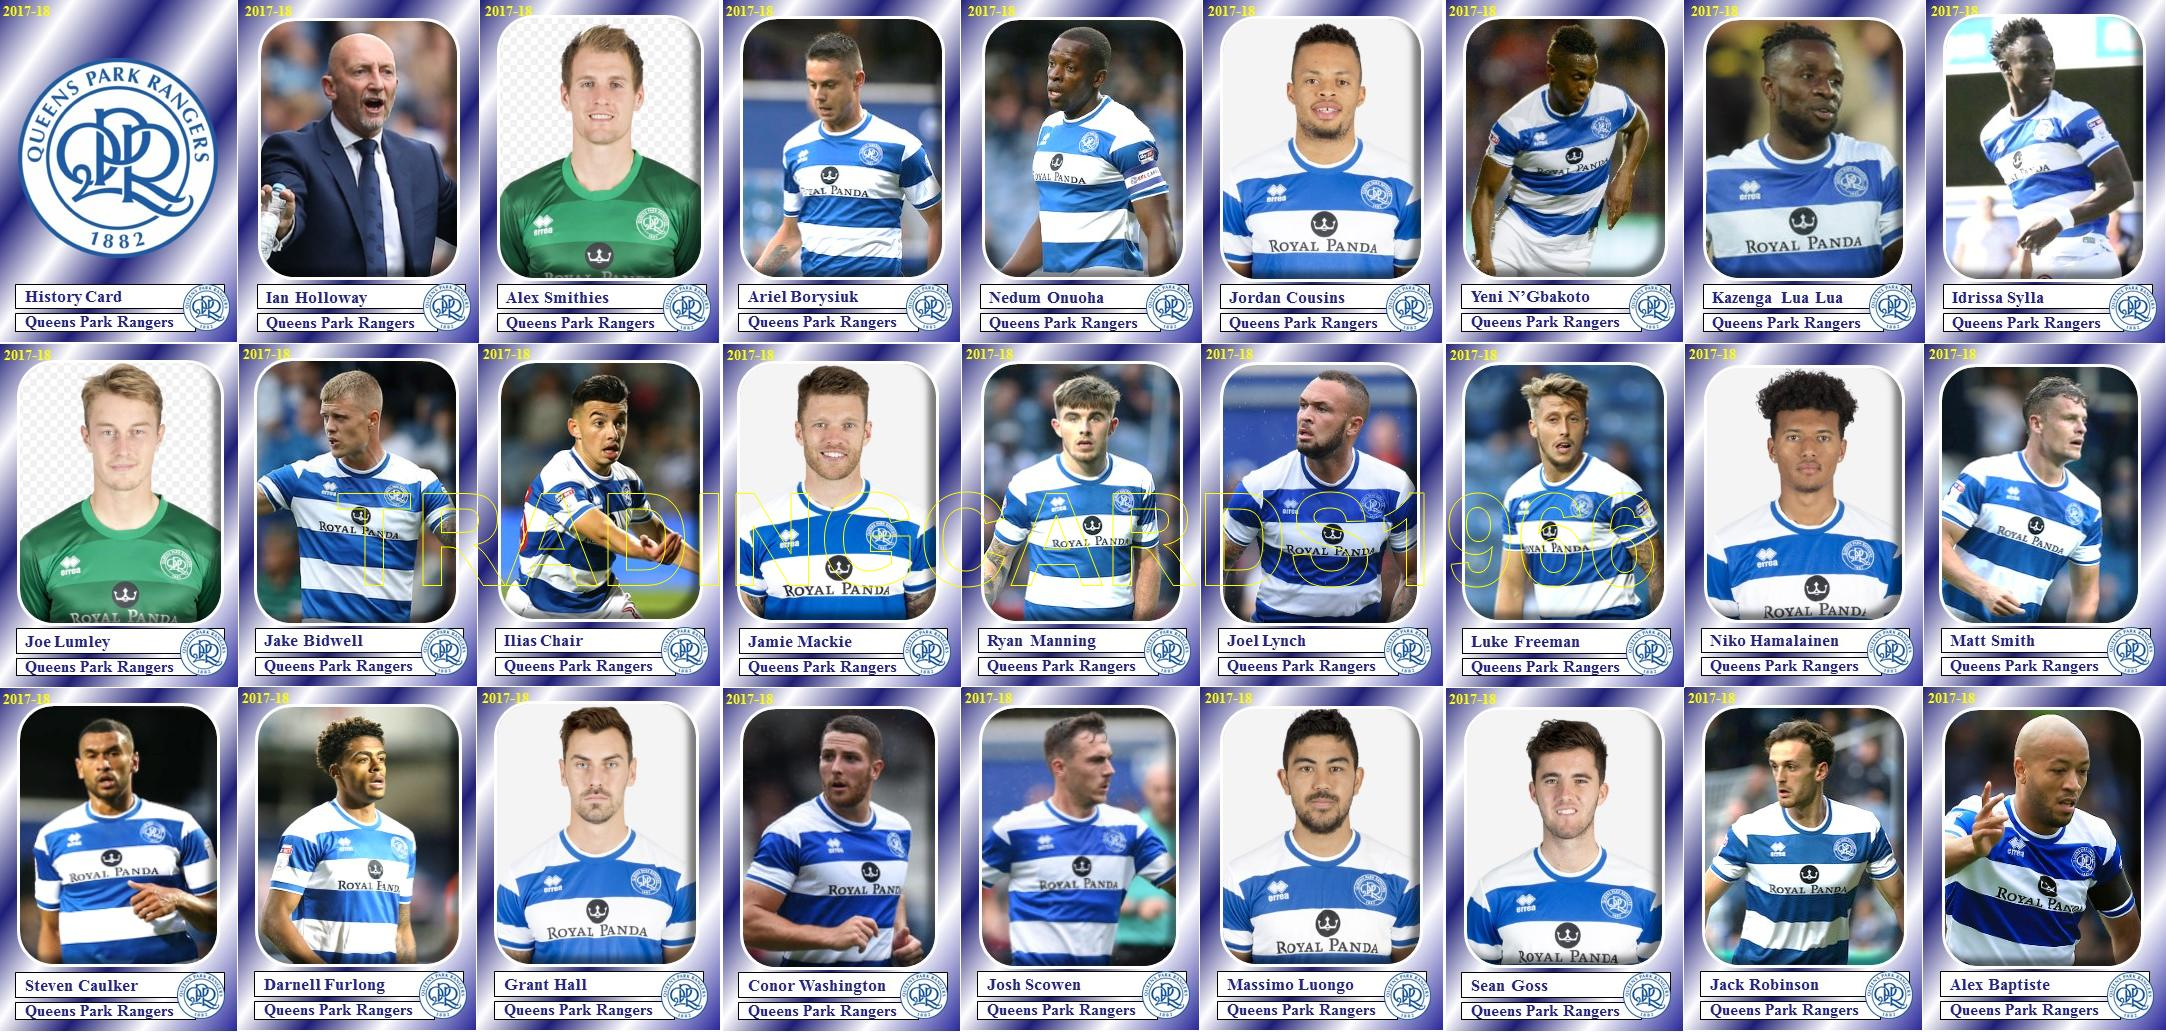 BOLTON WANDERERS FOOTBALL SQUAD trading cards 2017-18